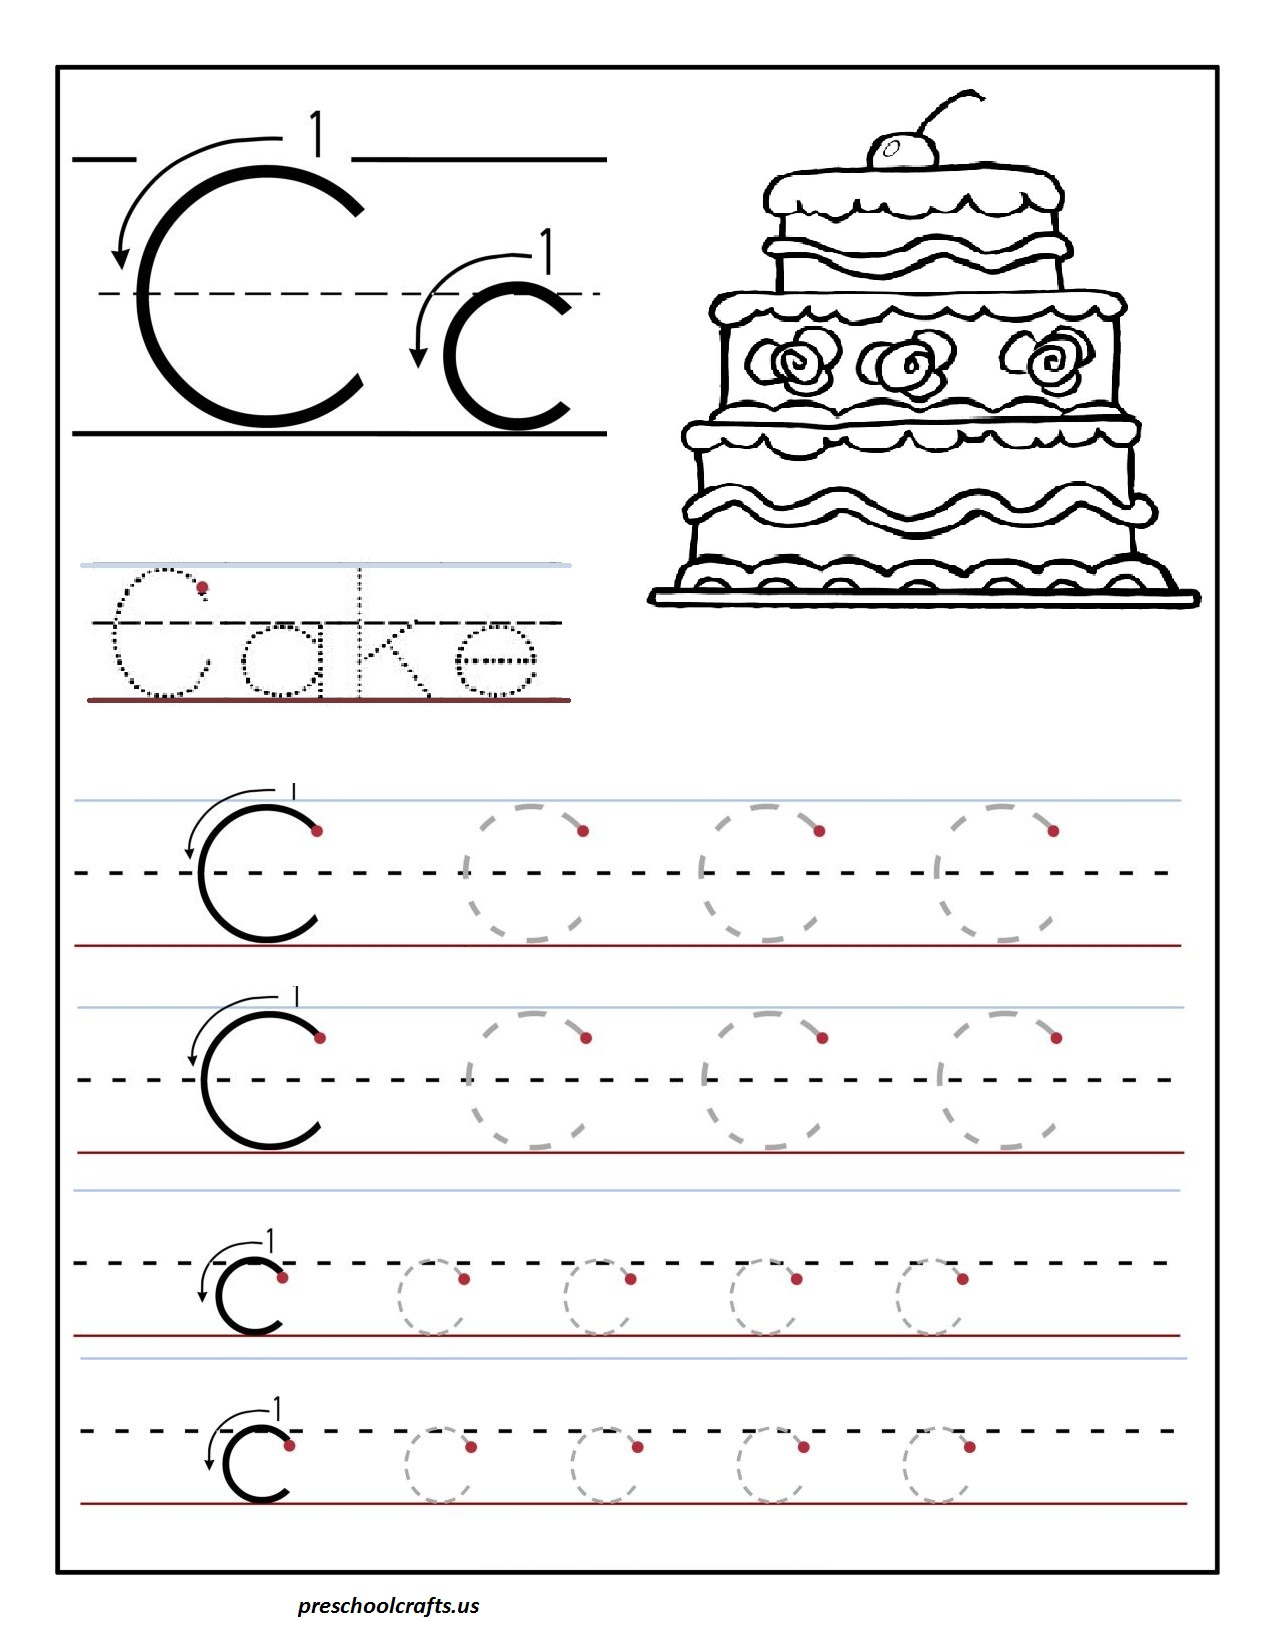 Letter A Worksheets For Preschoolers : Printable letter c tracing worksheets for